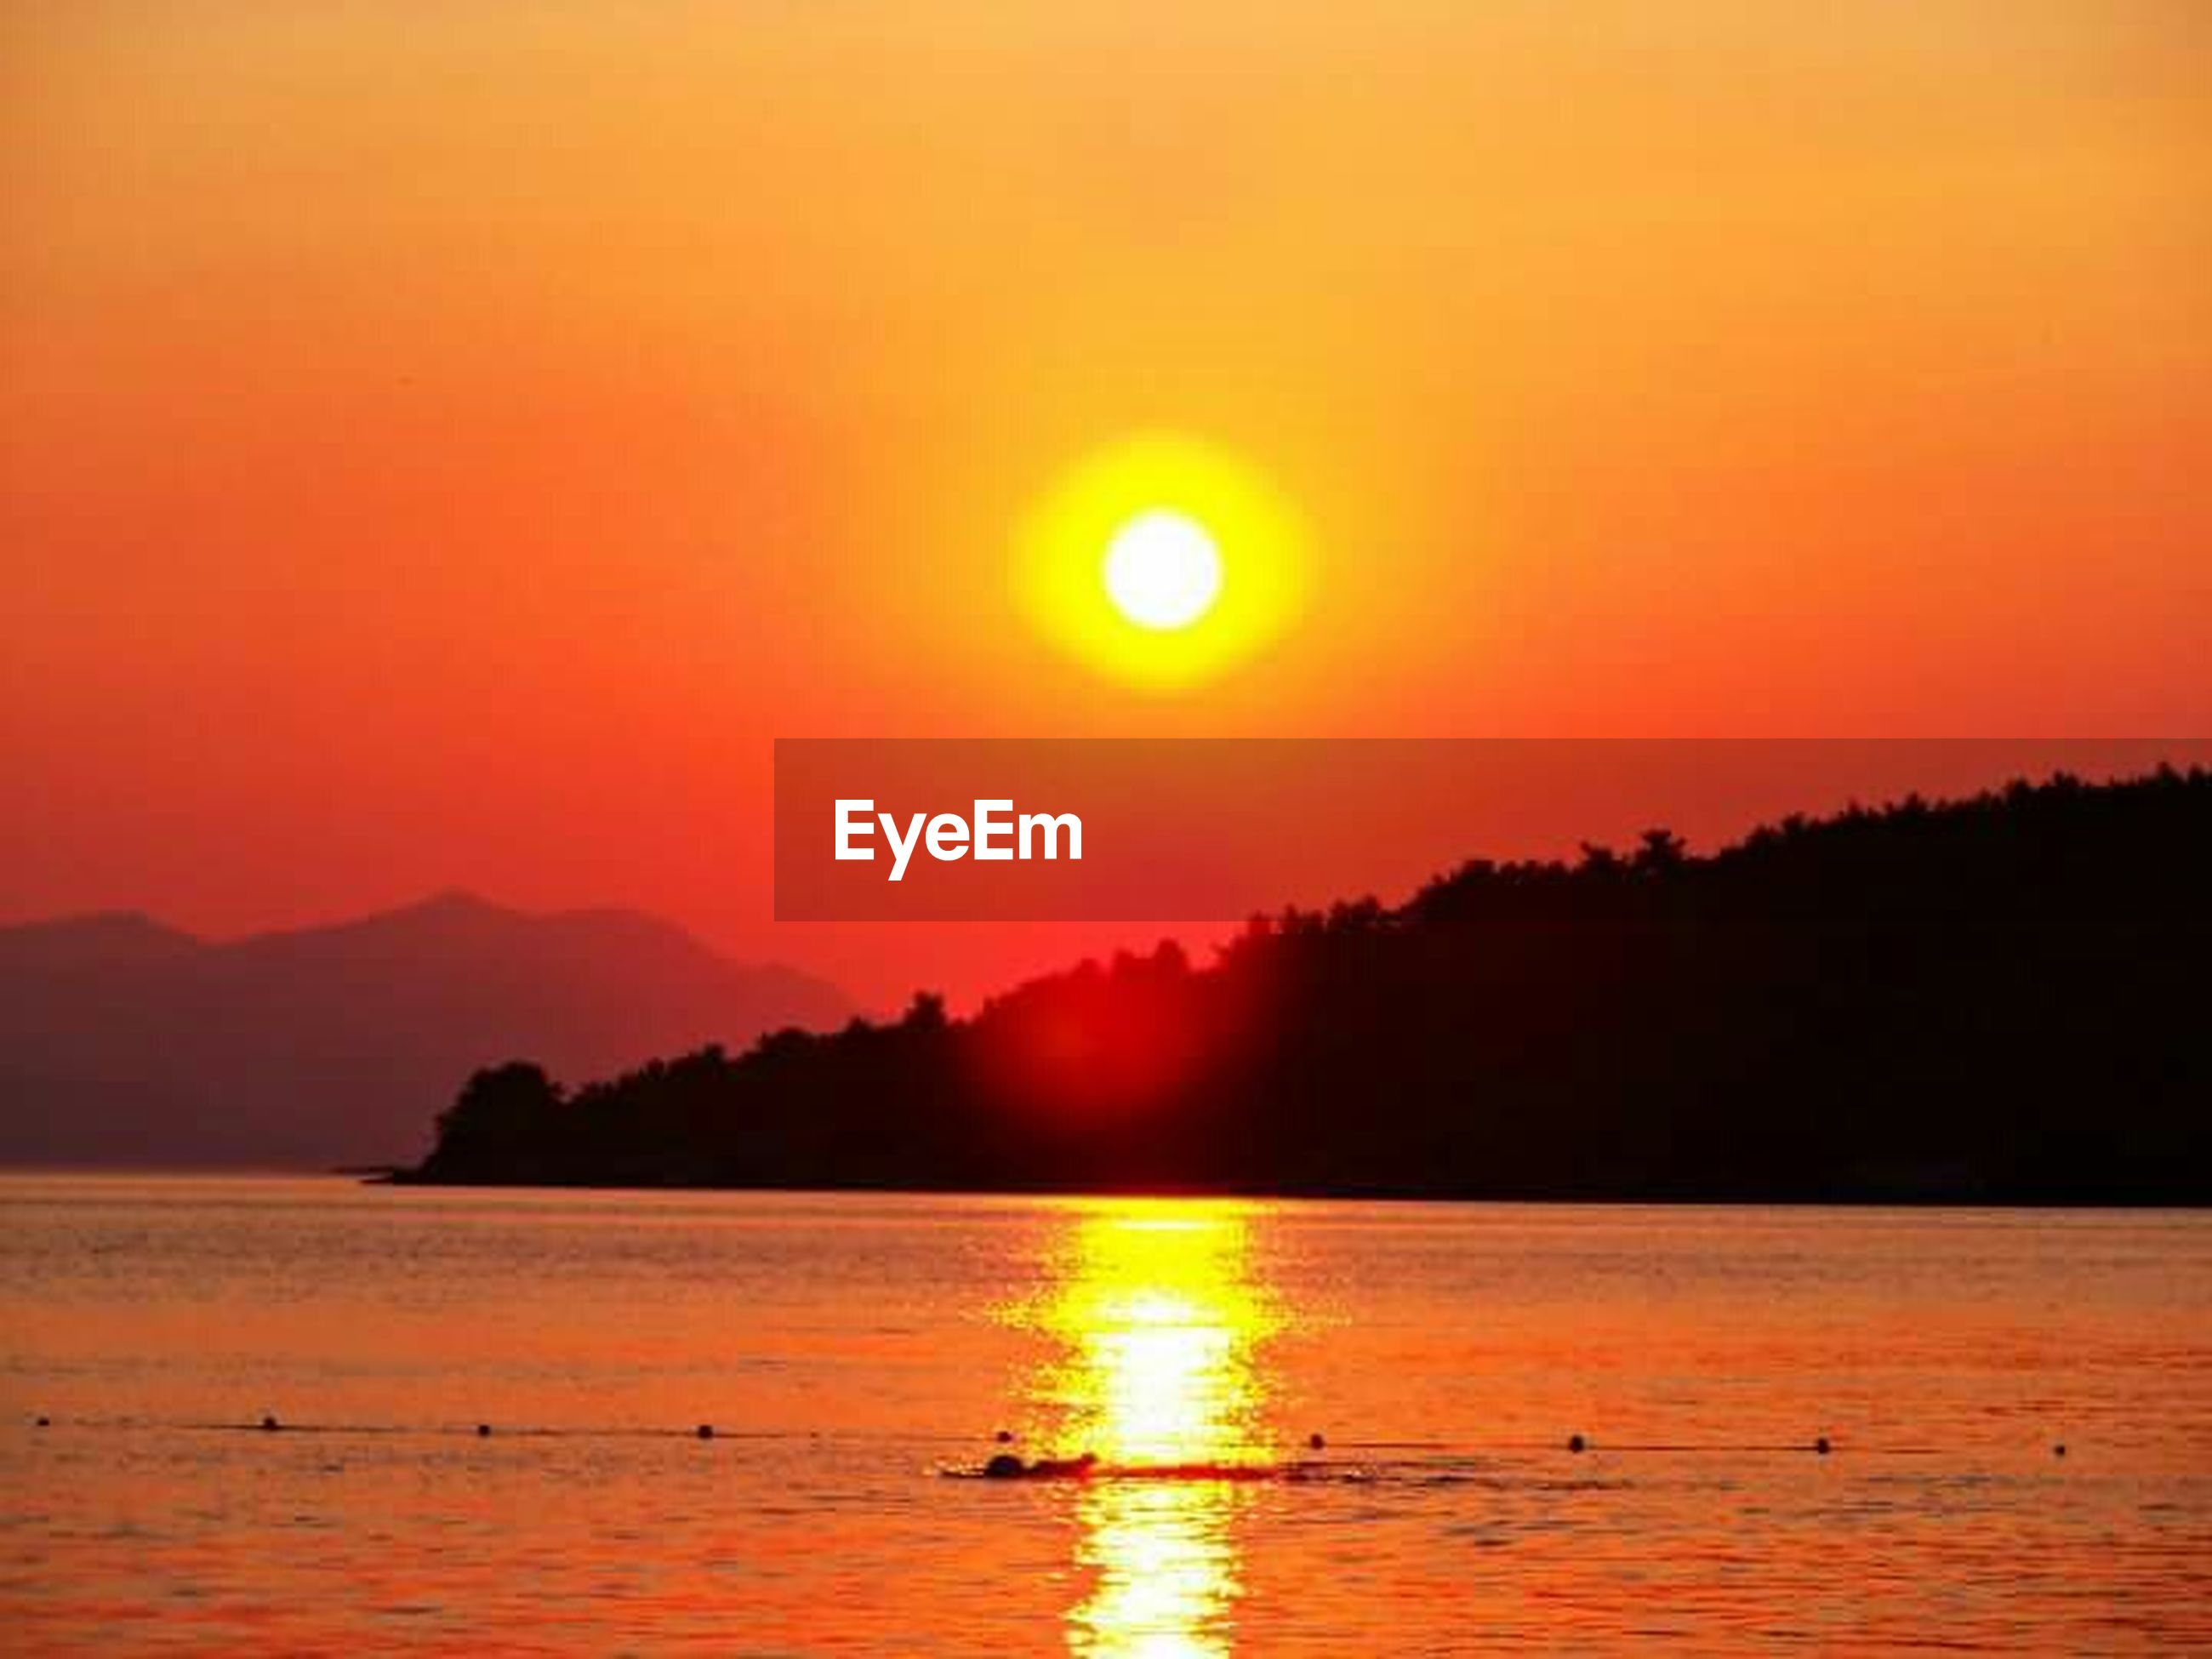 sunset, water, sun, orange color, scenics, tranquil scene, silhouette, reflection, tranquility, beauty in nature, mountain, idyllic, lake, nature, waterfront, sky, nautical vessel, river, sunlight, non-urban scene